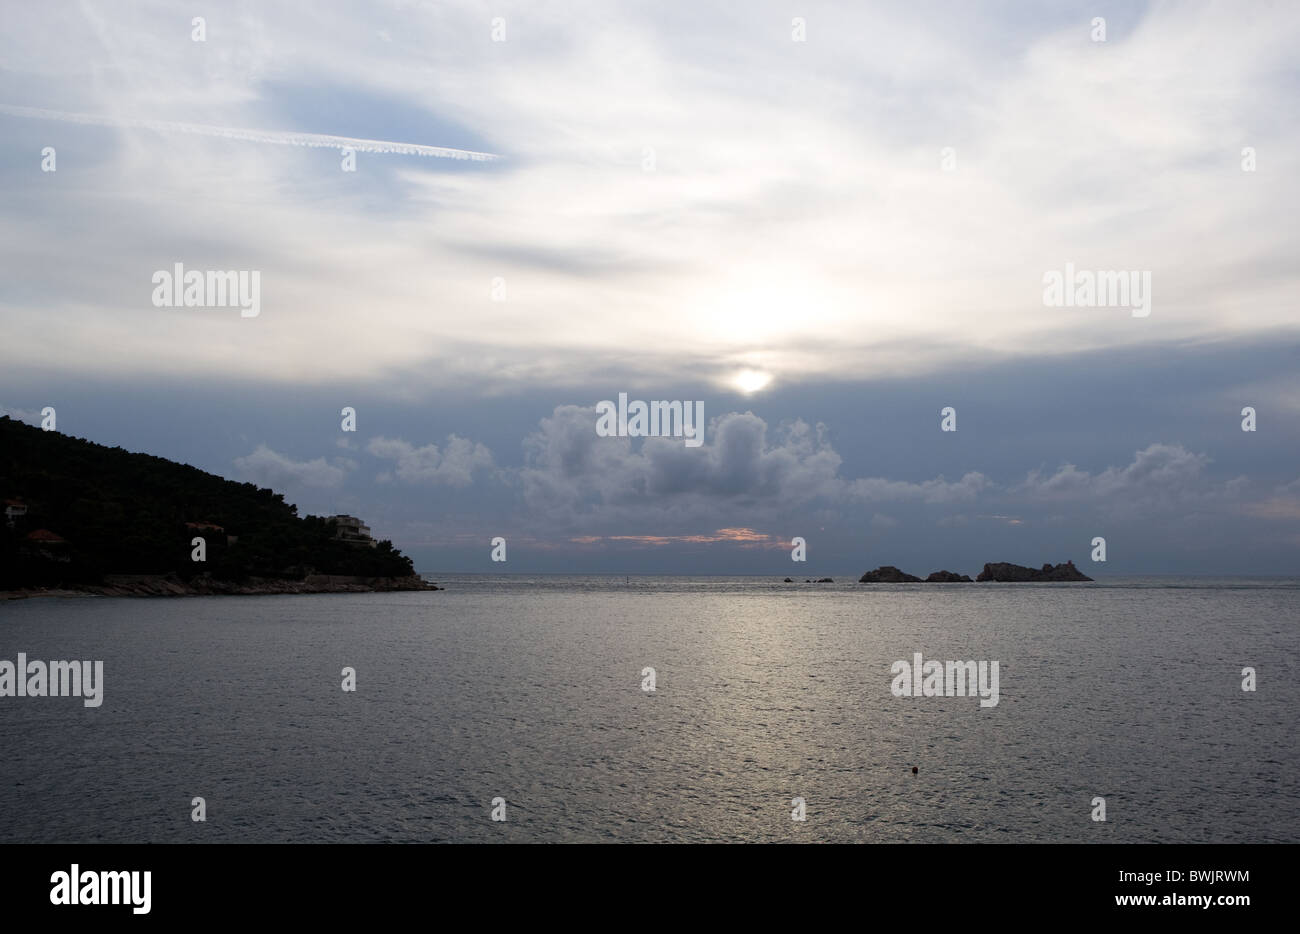 View of the Adriatic Sea on the Dalmatian Coast at sunset from Dubrovnik, Croatia - Stock Image